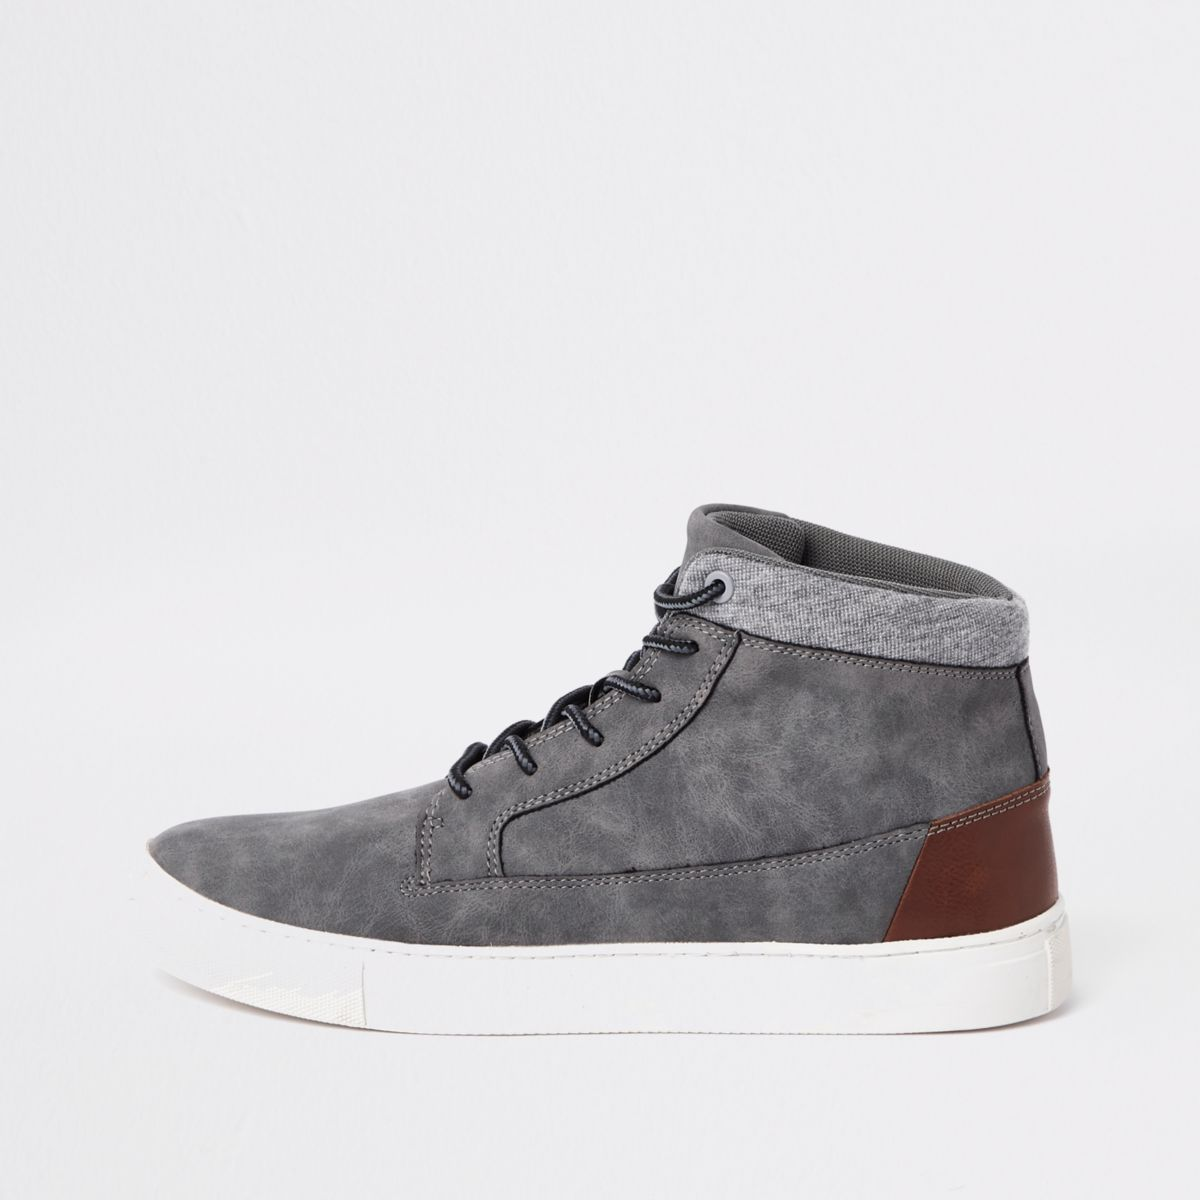 Grey wide fit high top sneakers